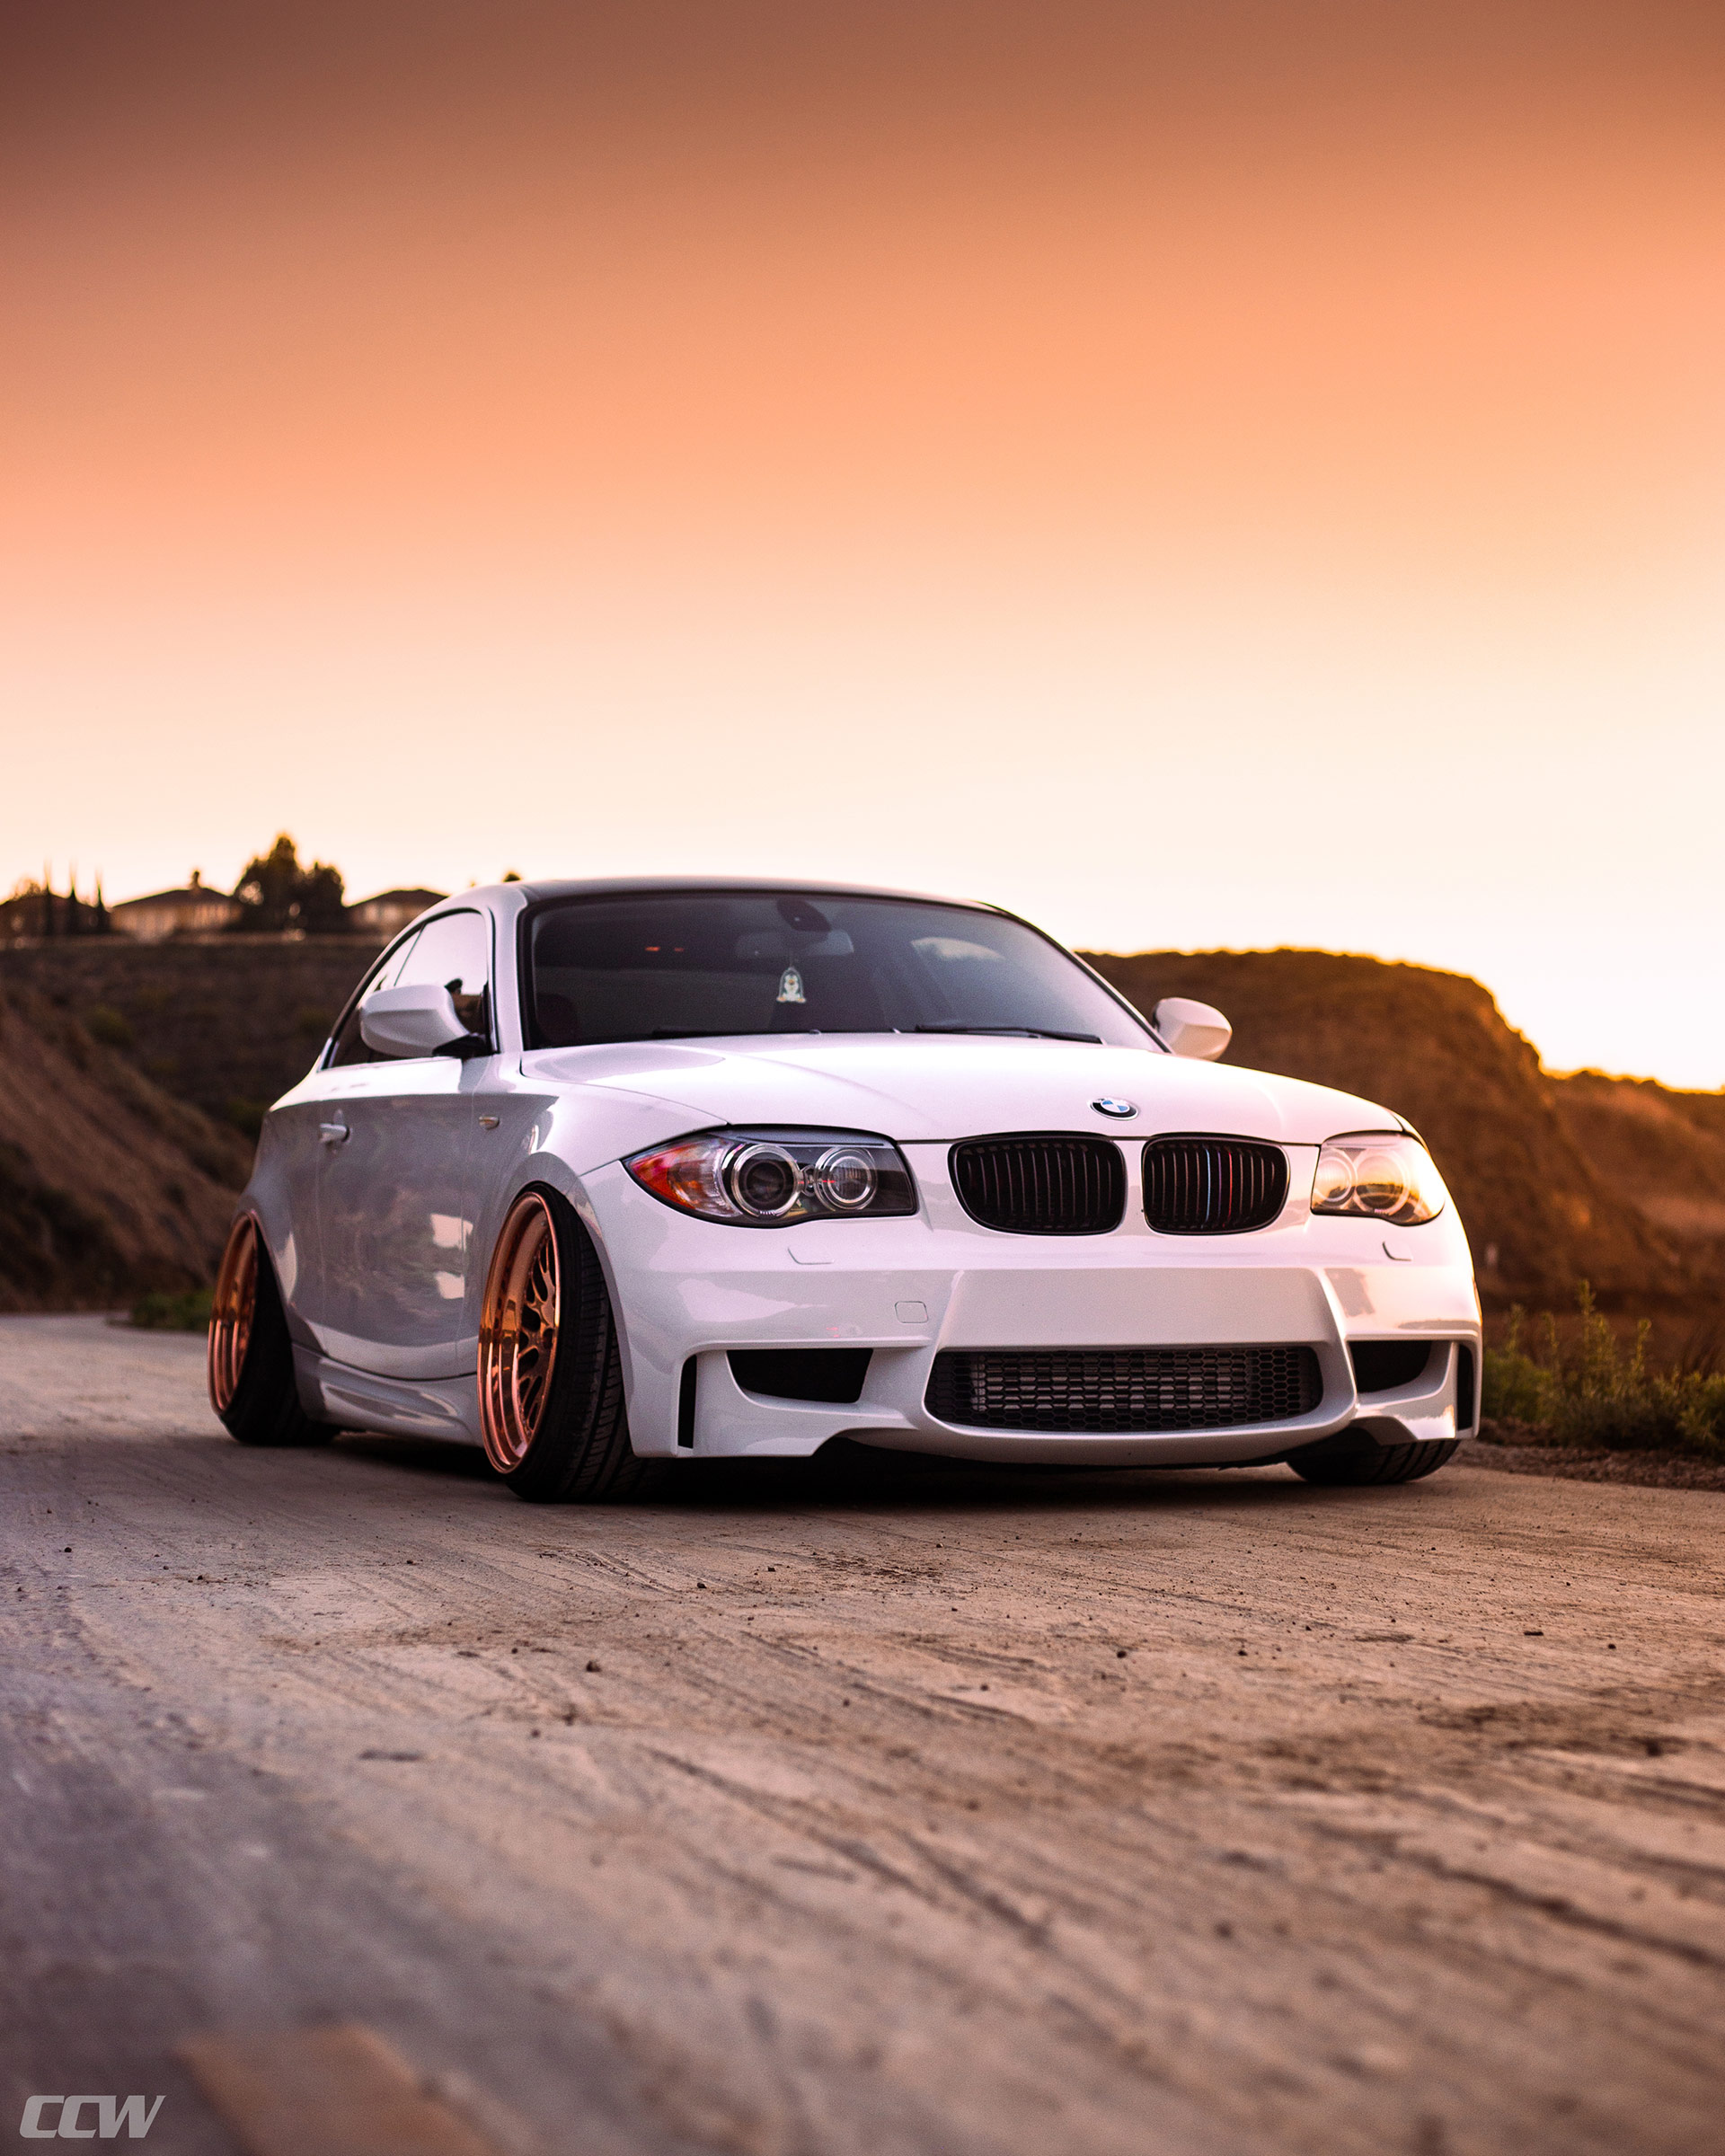 alpine white bmw 135i modified bagged air suspension carbon fiber copper ccw classic wheels i